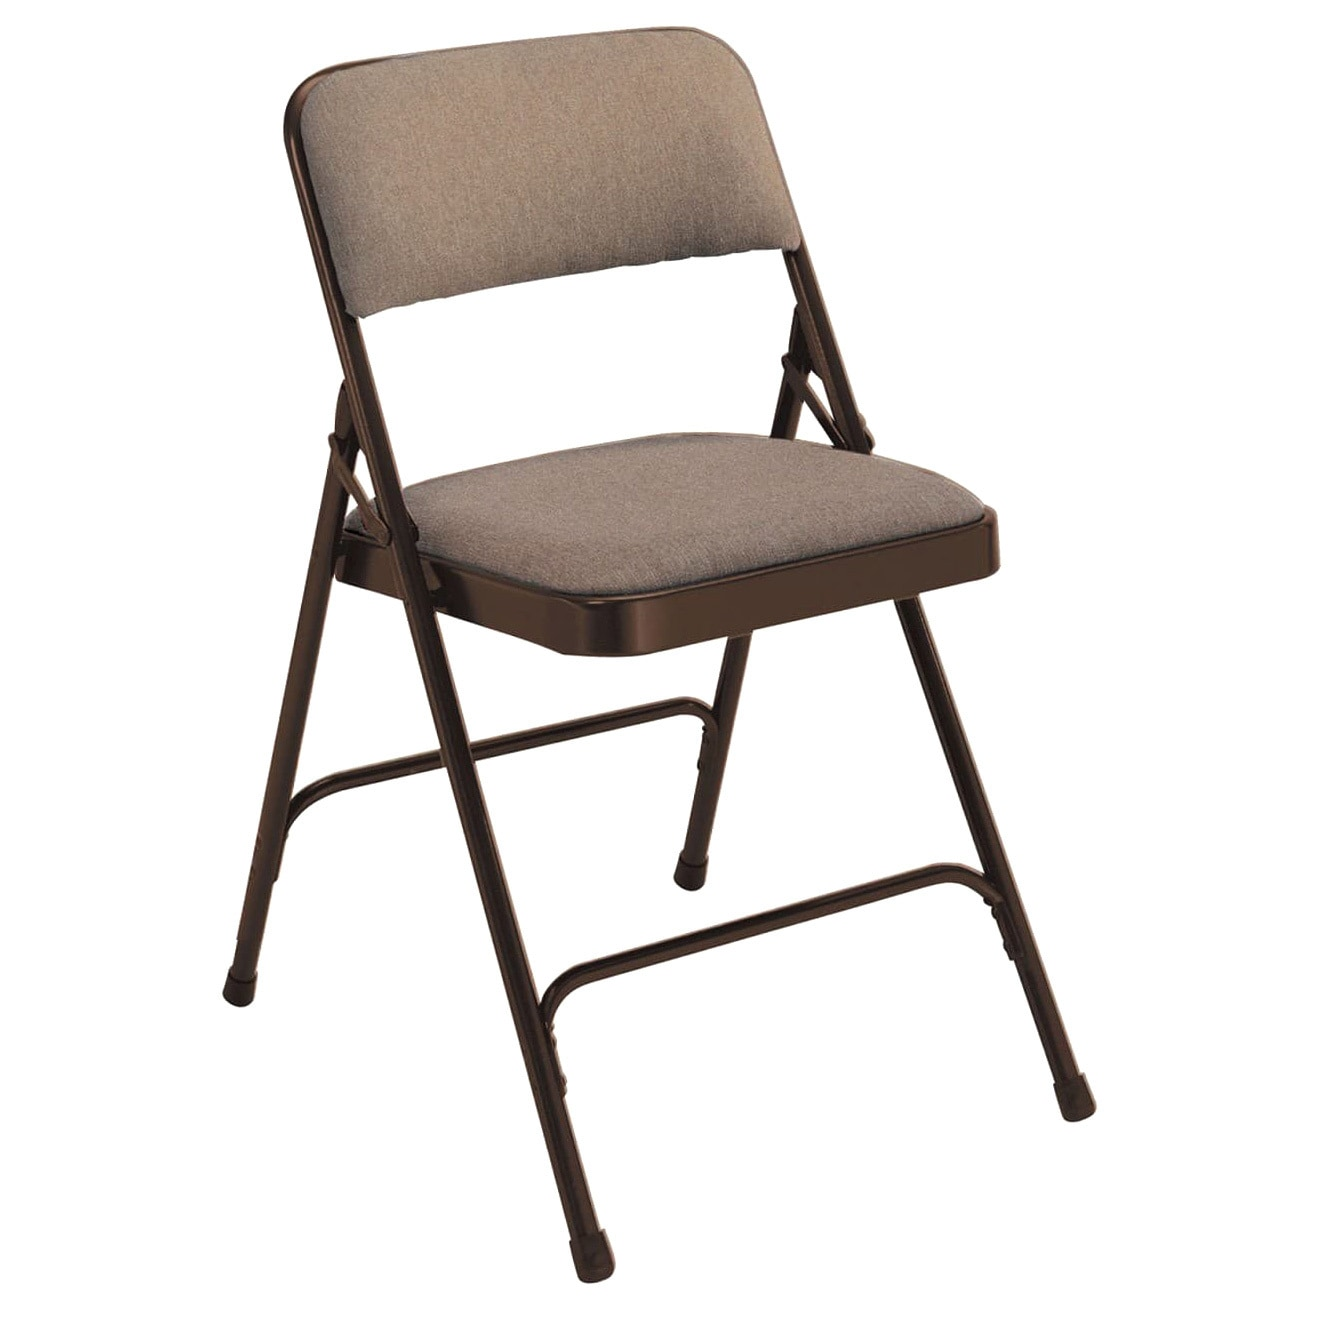 national public seating national public seating fabric upholstered premium folding chairs pack of 4 - National Public Seating